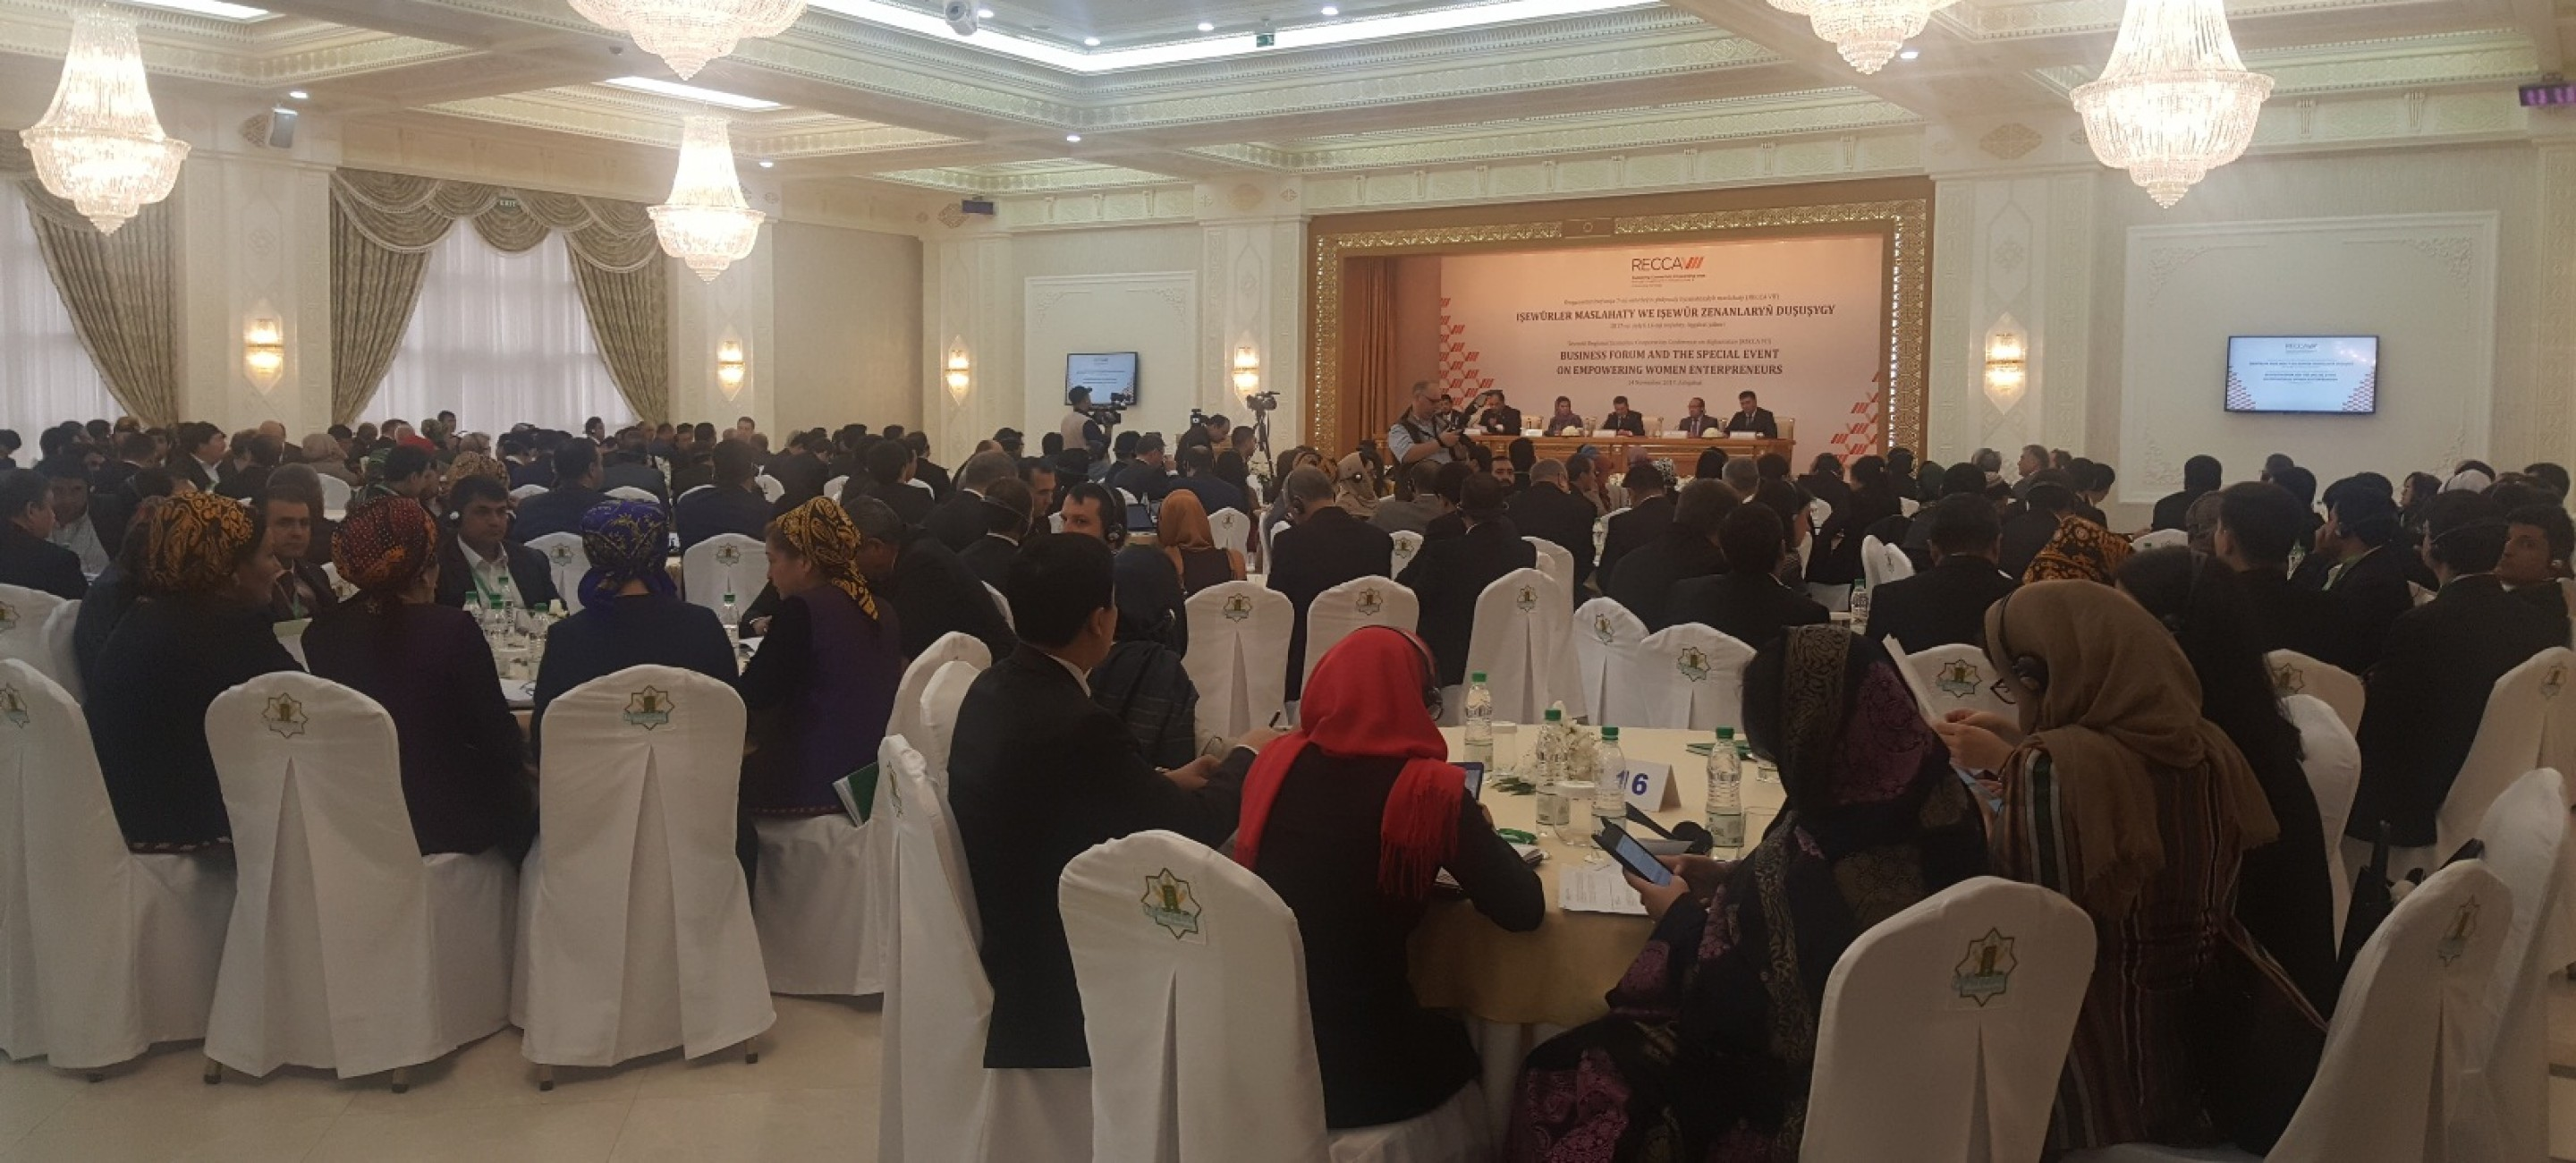 THE BUSINESS FORUM IN ASHGABAT DISCUSSED ASPECTS OF REGIONAL ECONOMIC COOPERATION